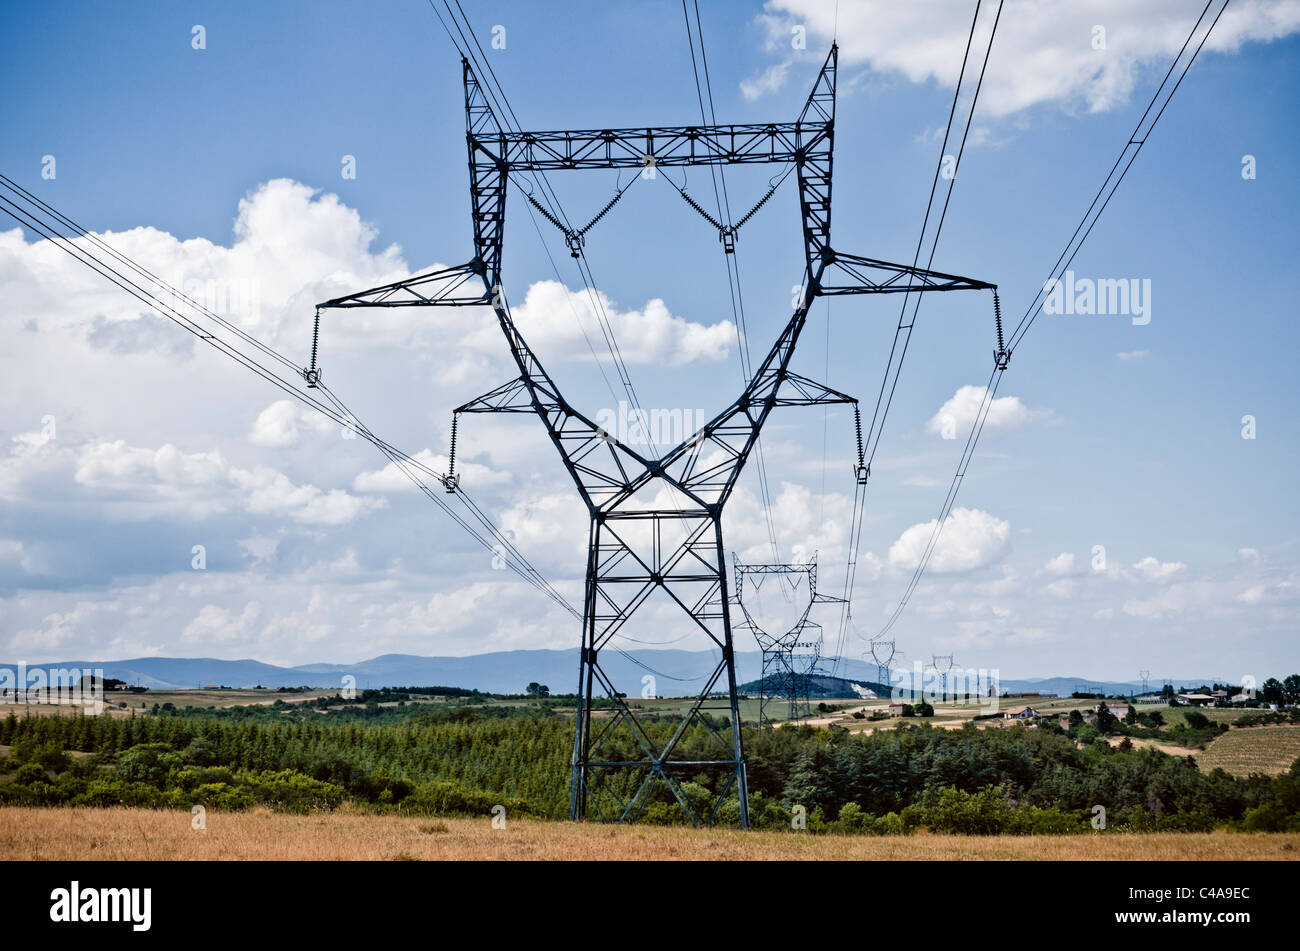 Where can I buy a pylon for home 13